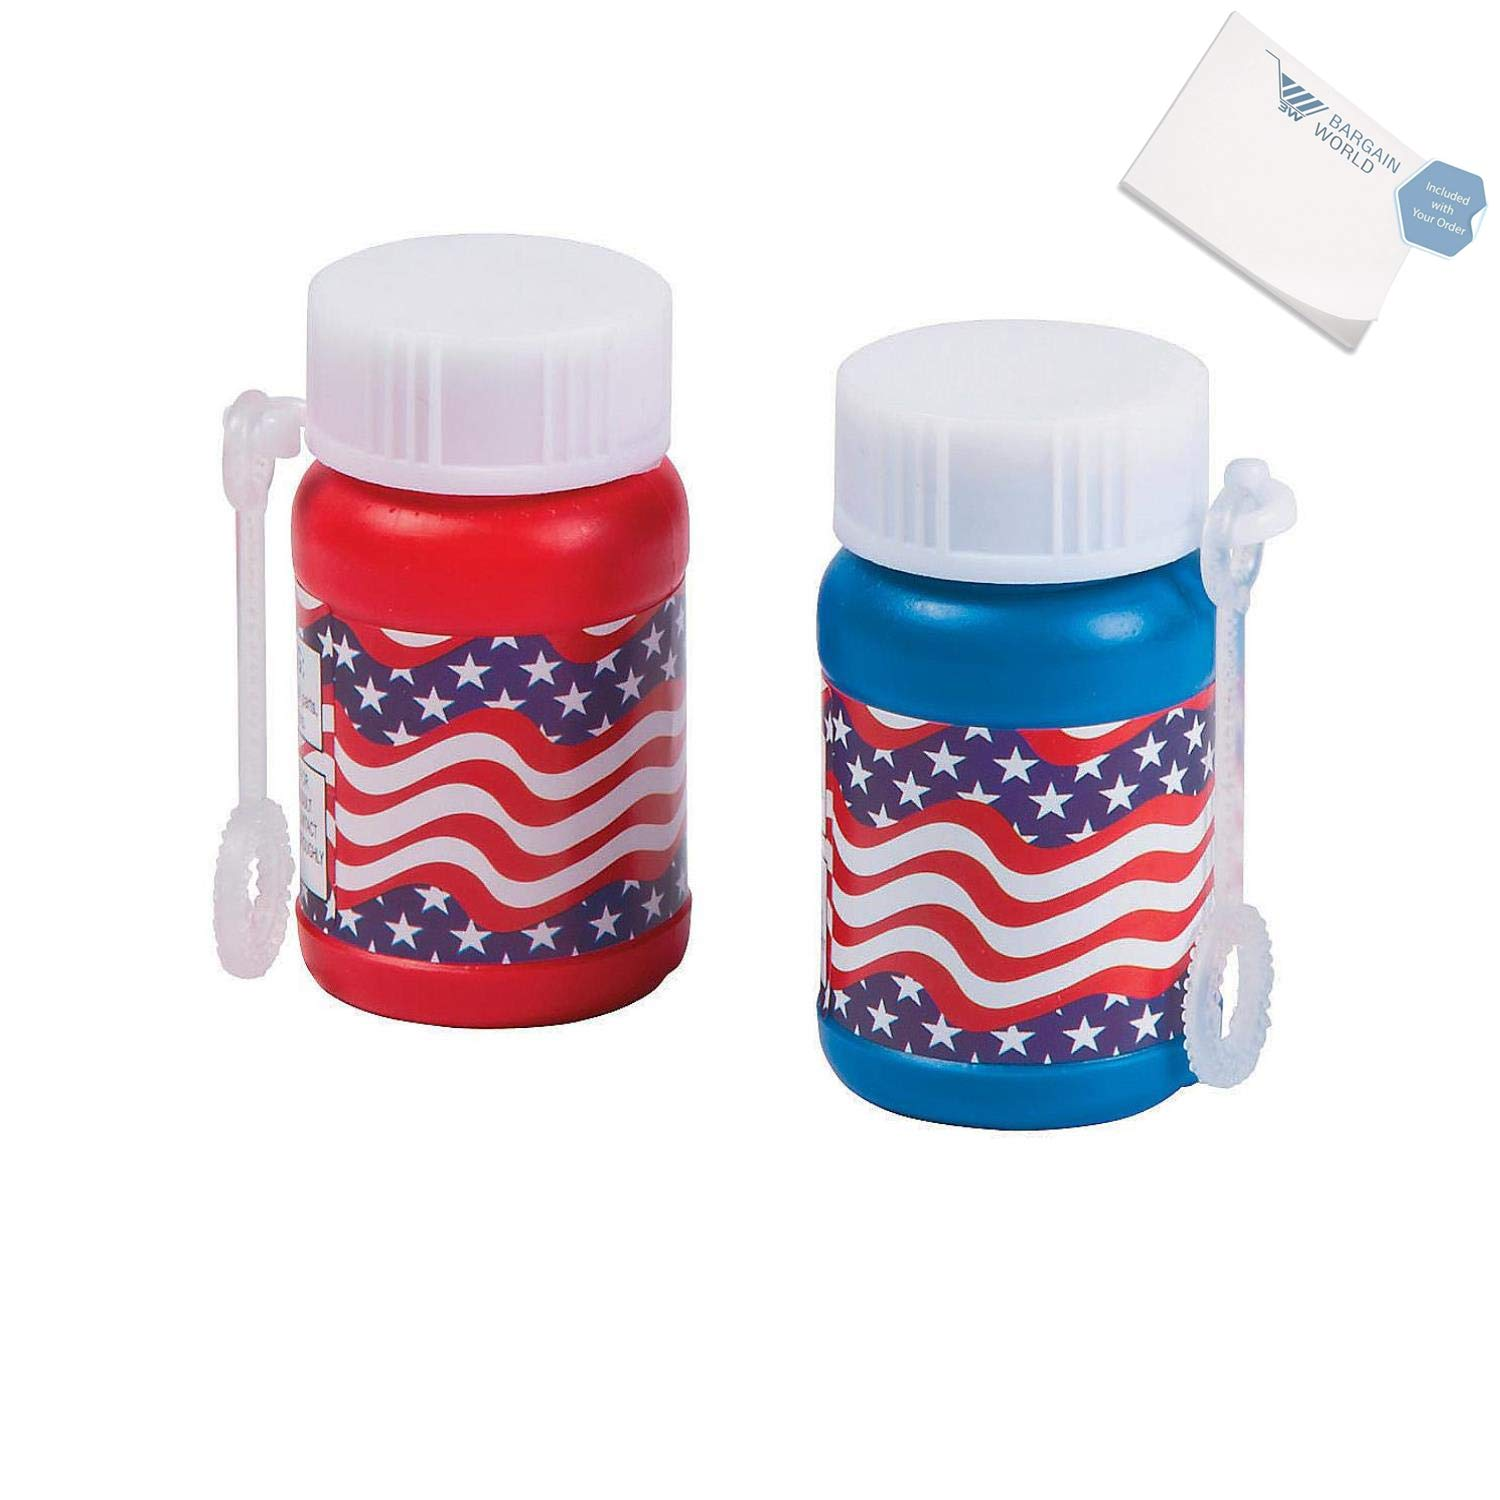 Bargain World Plastic Mini Stars And Stripes Bubble Bottles (With Sticky Notes) by Bargain World (Image #1)